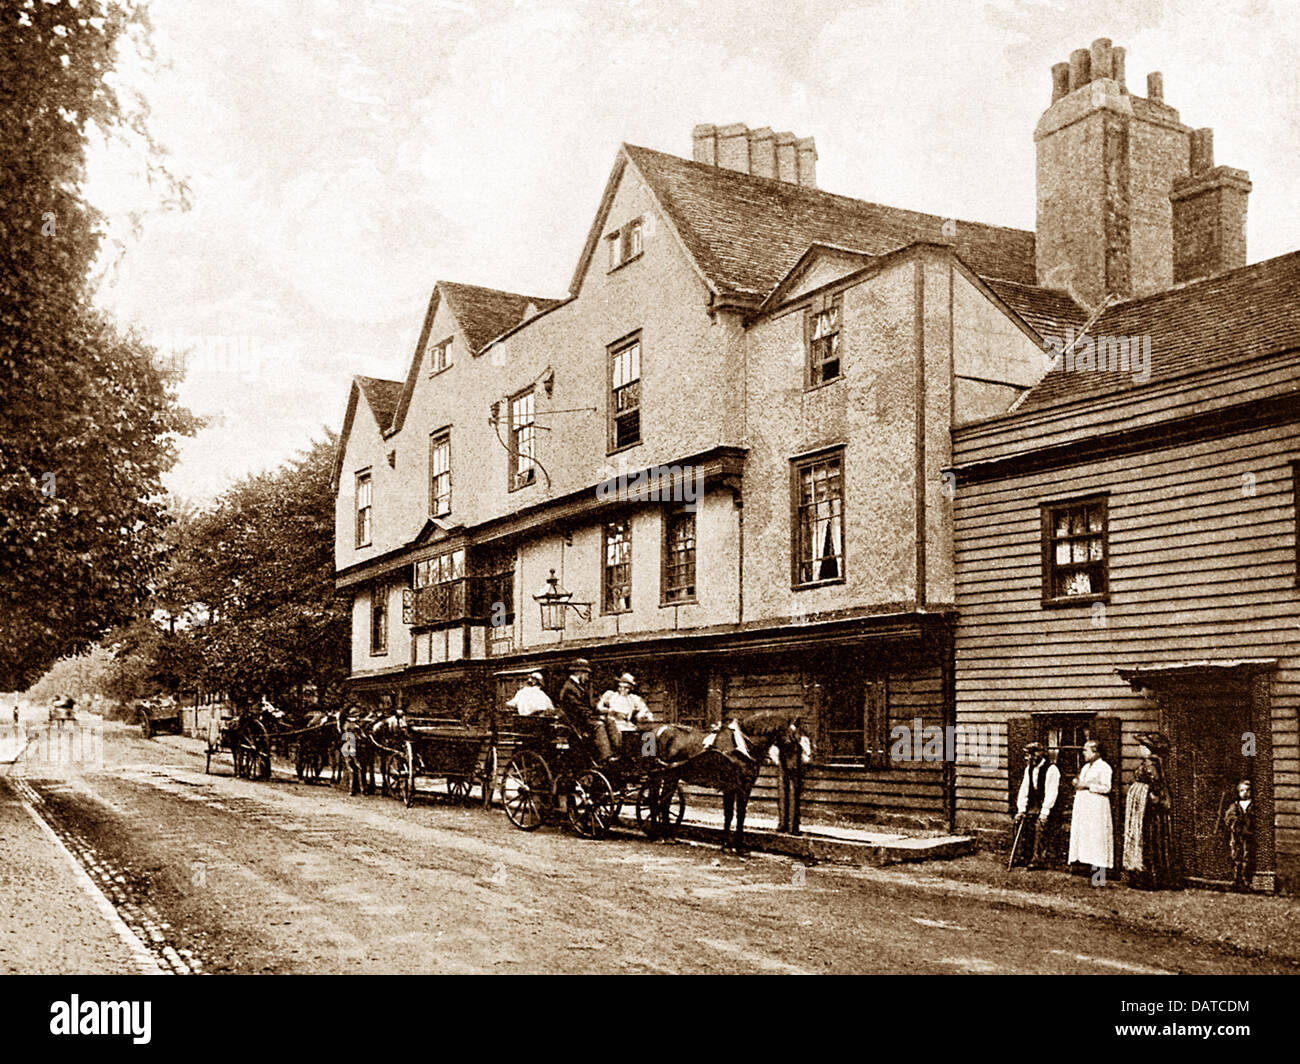 Chigwell The King's Head early 1900s - Stock Image